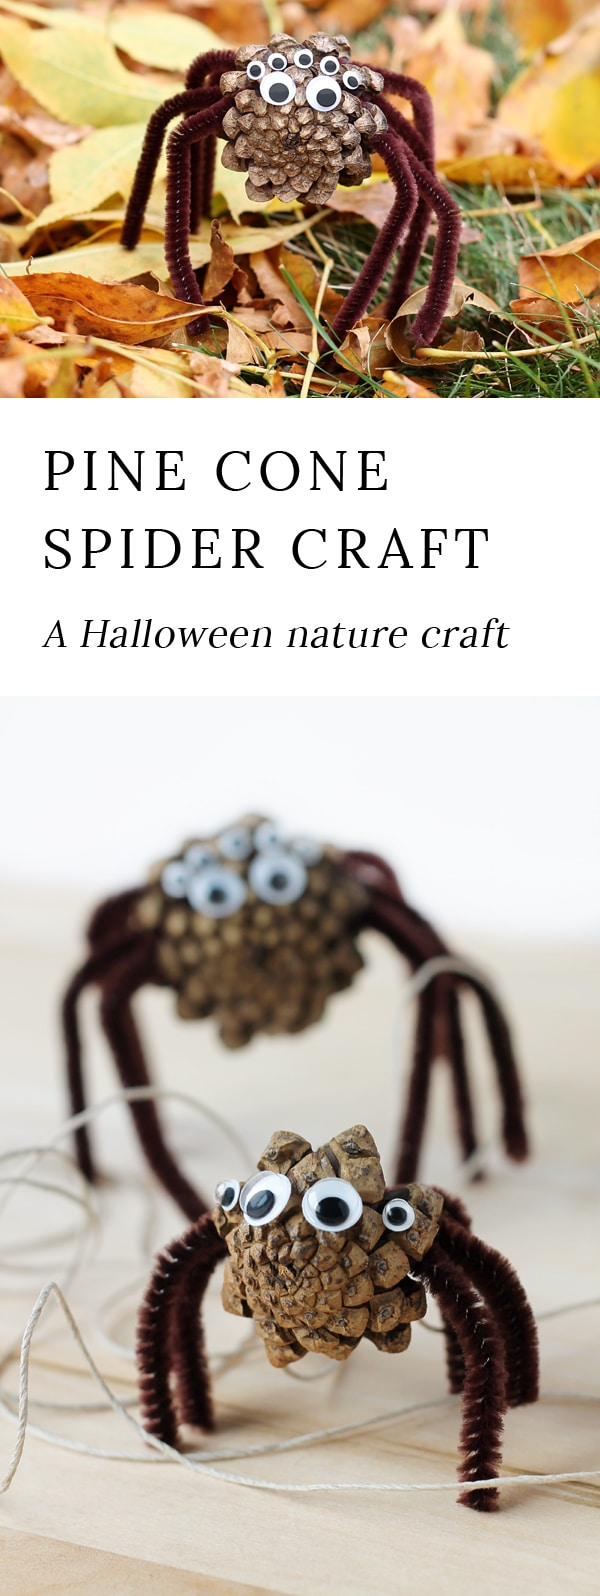 Kids of all ages will enjoy collecting pine cones to create Pine Cone Spiders for Halloween. This creepy-cute nature craft is perfect for home, school, community programs, and camp. #pineconespiders #naturecraft via @firefliesandmudpies